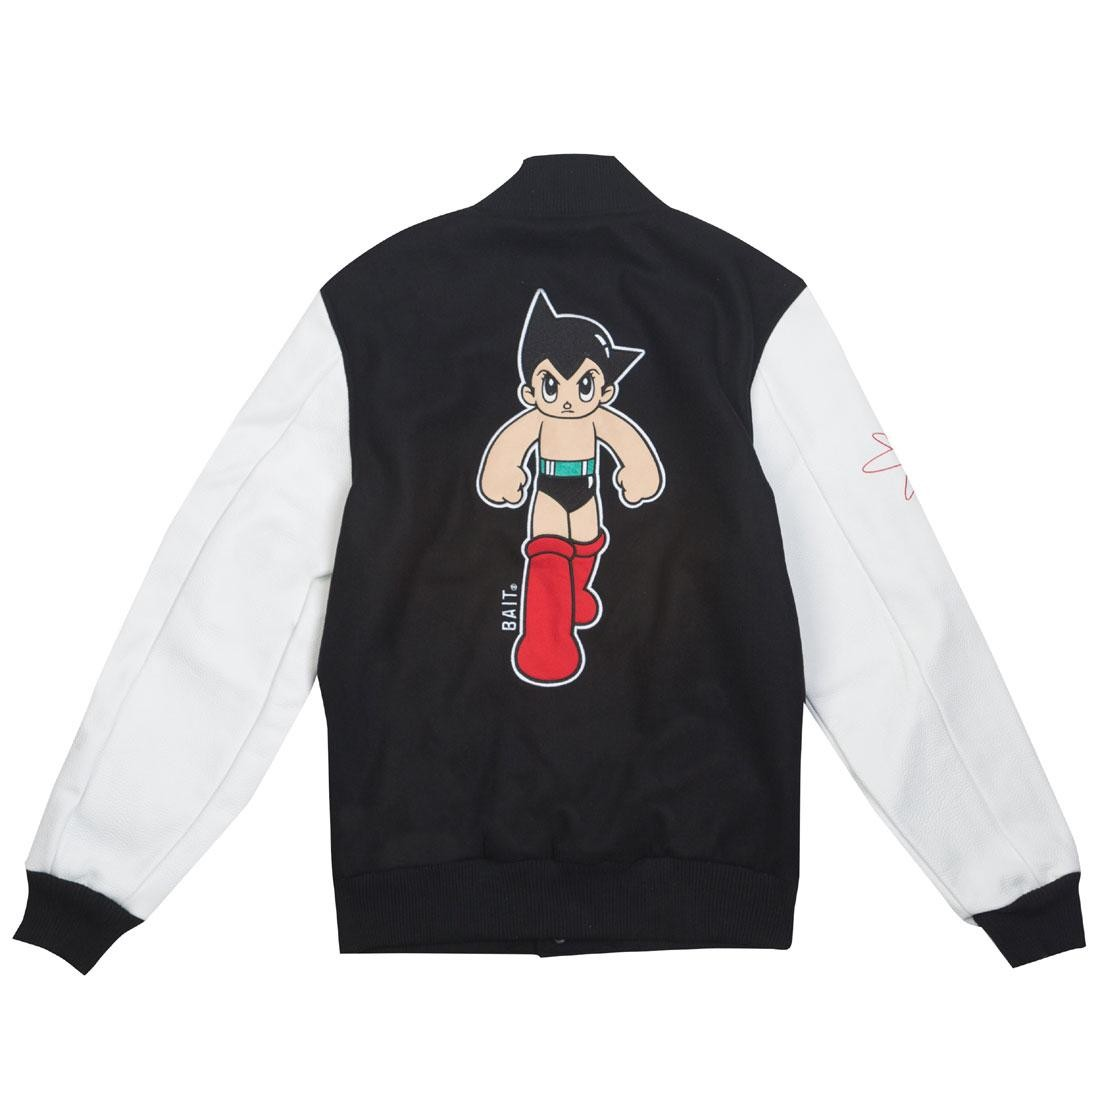 BAIT x Astro Boy Men Step Varsity Jacket (black / white)